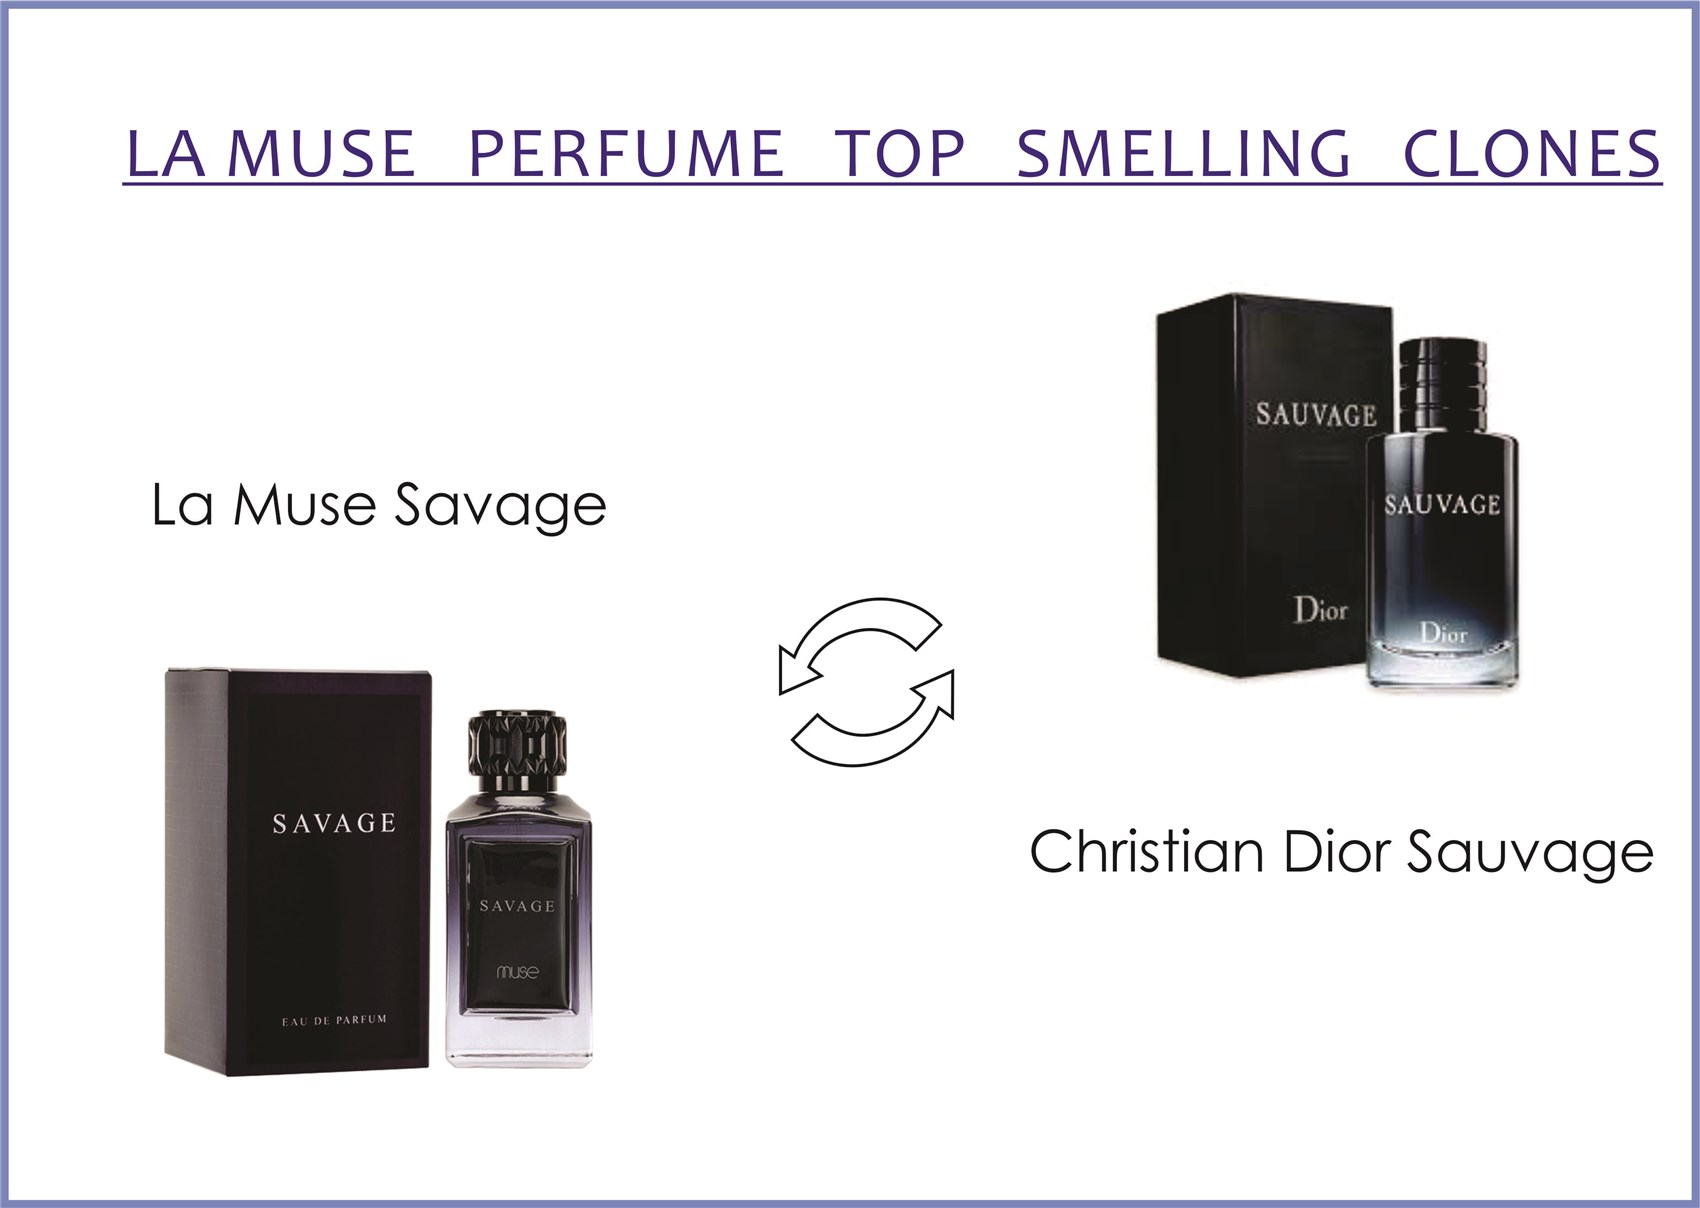 la-muse-savage-for-men-100-ml-edp-by-lattafa-perfumes-christian-dior-sauvage-perfume-for-man-100-ml-edt